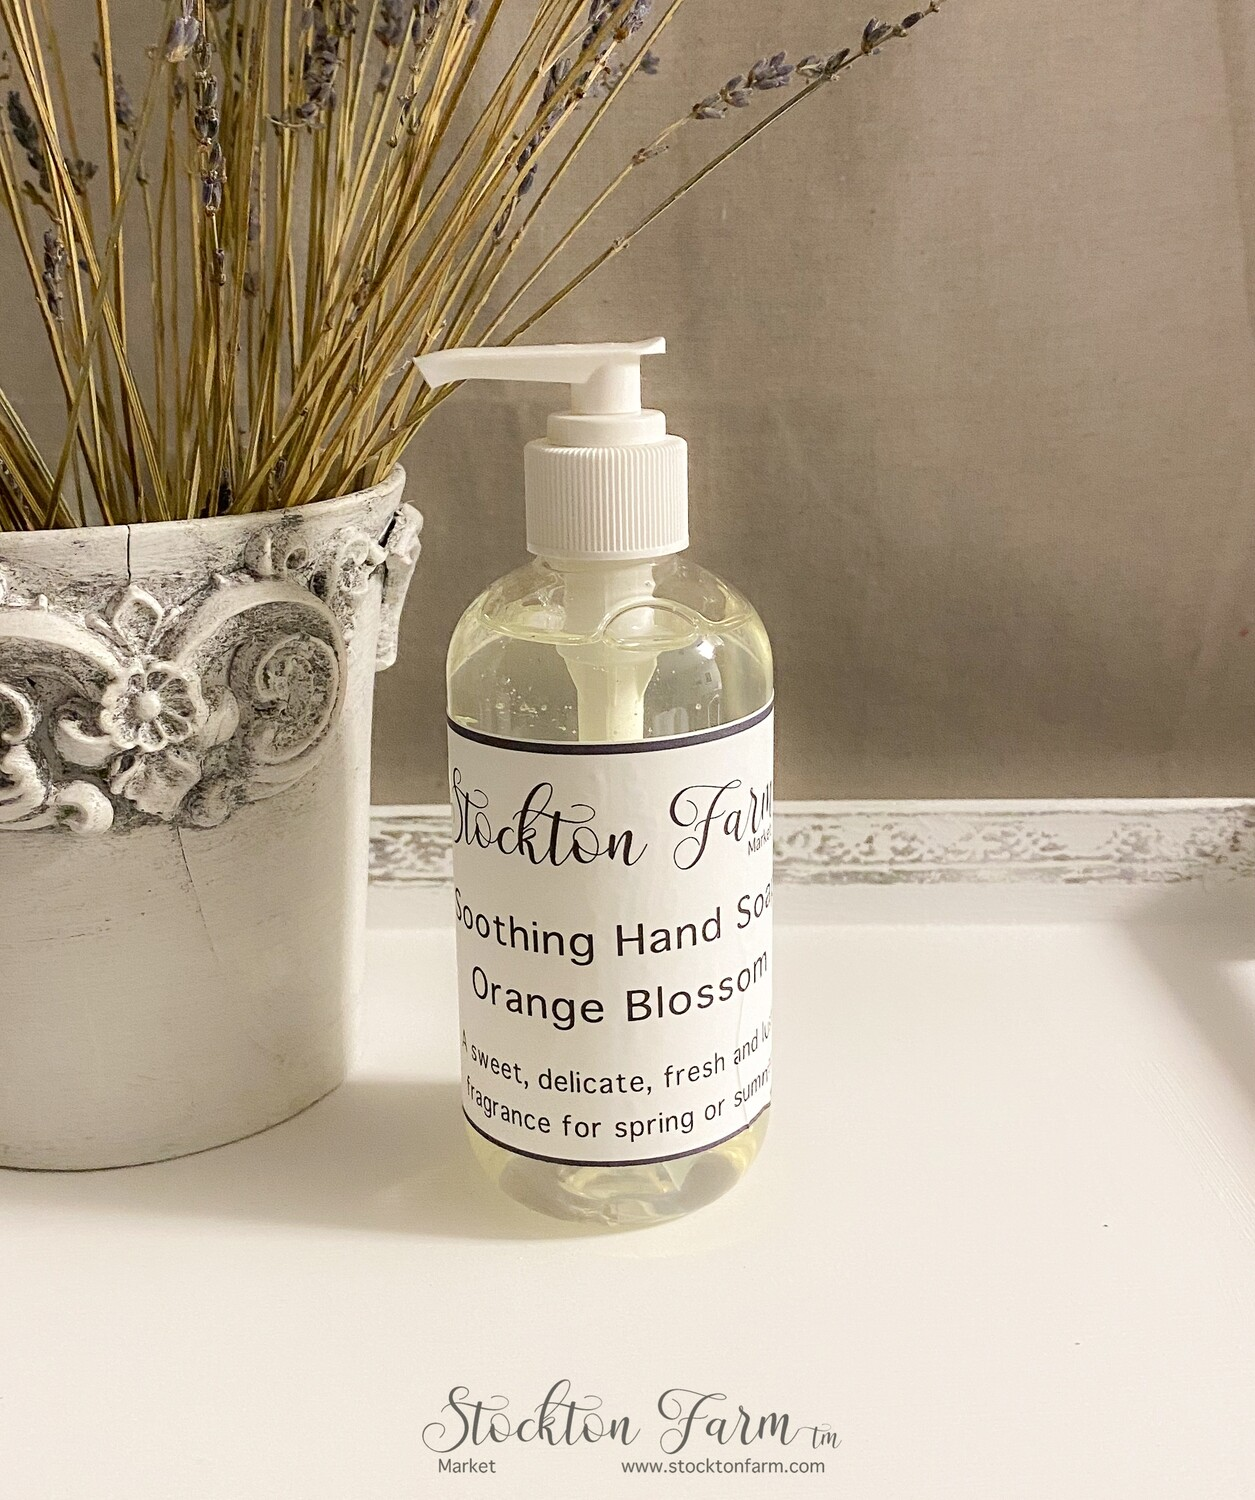 Orange Blossom Soothing Hand Soap 8oz